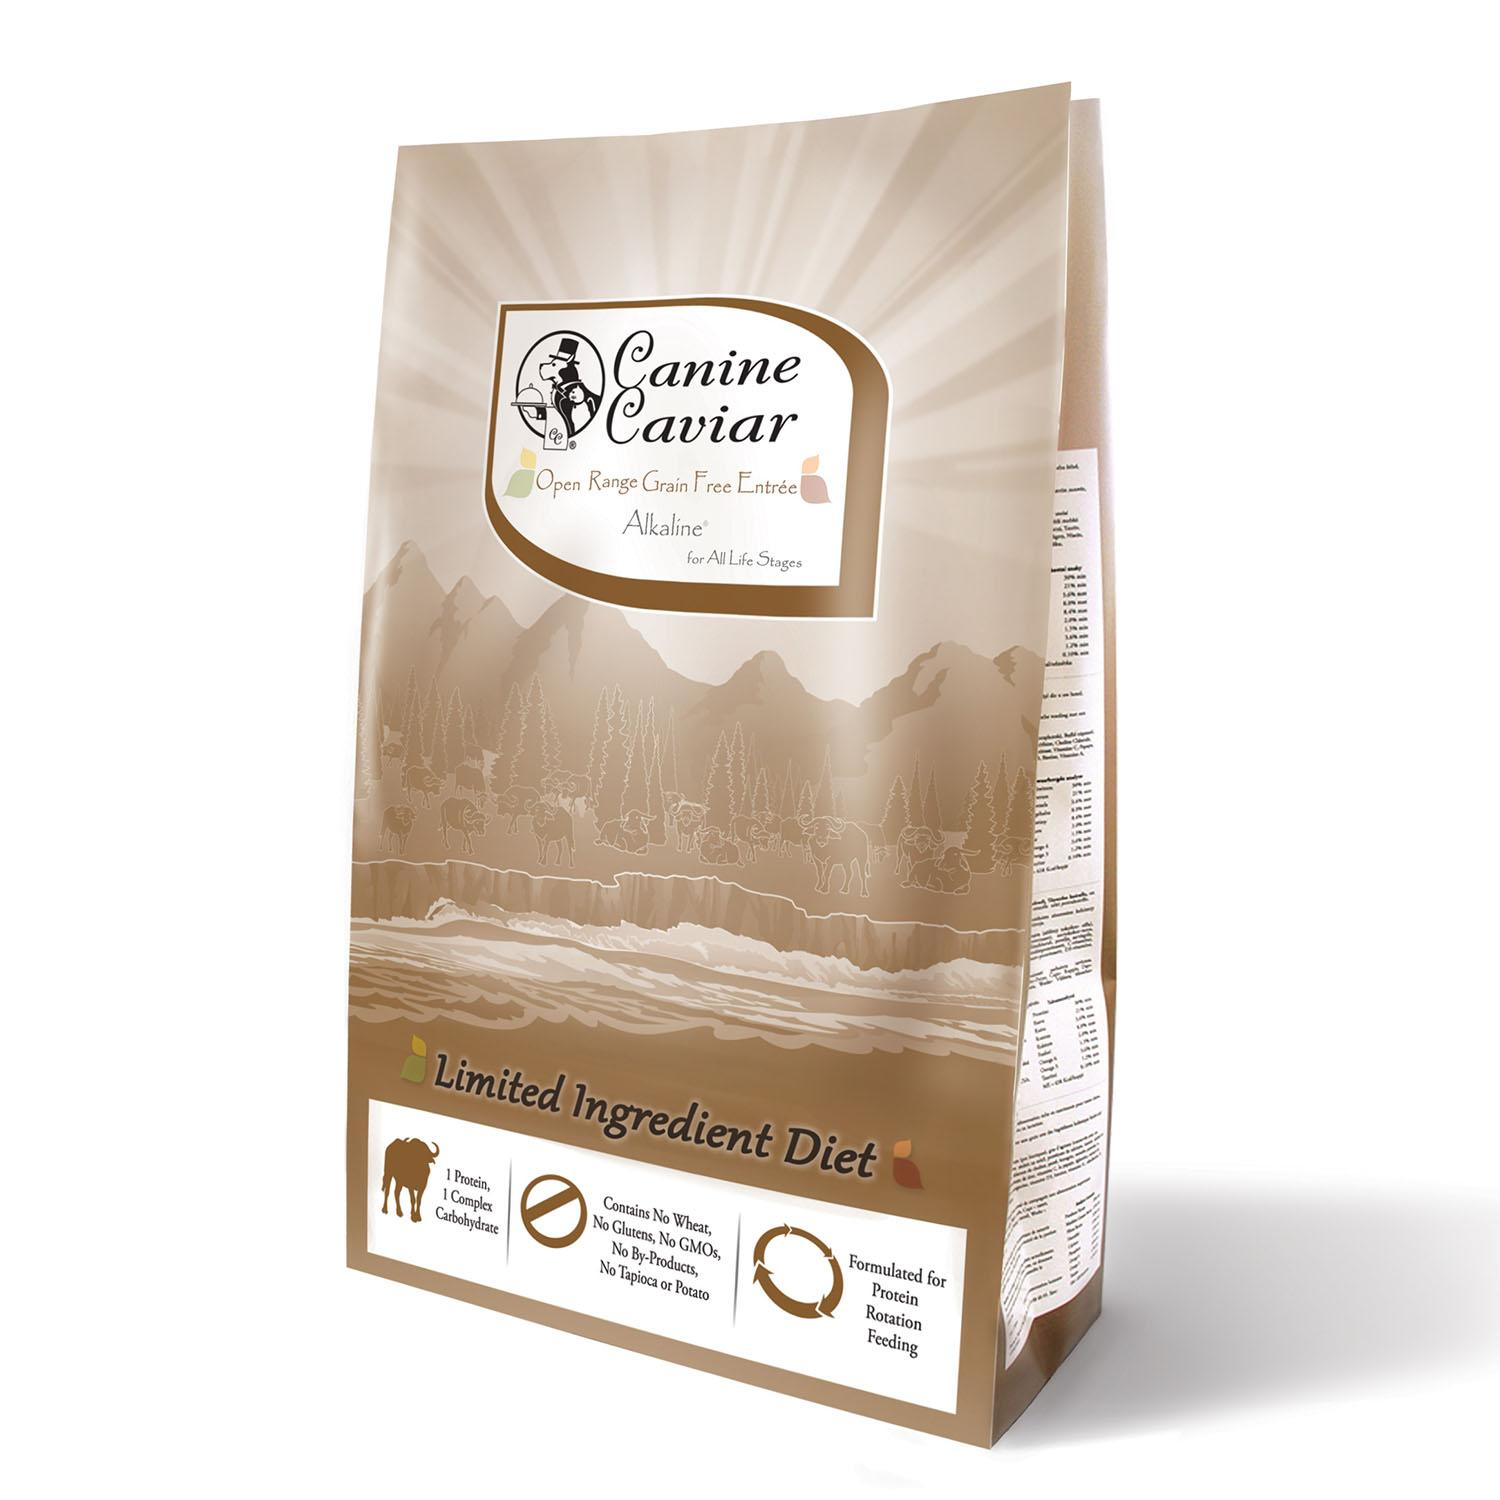 Canine Caviar Grain-Free Limited-Ingredient Alkaline Holistic Dry Dog Food - Open Range with Buffalo & Chickpeas